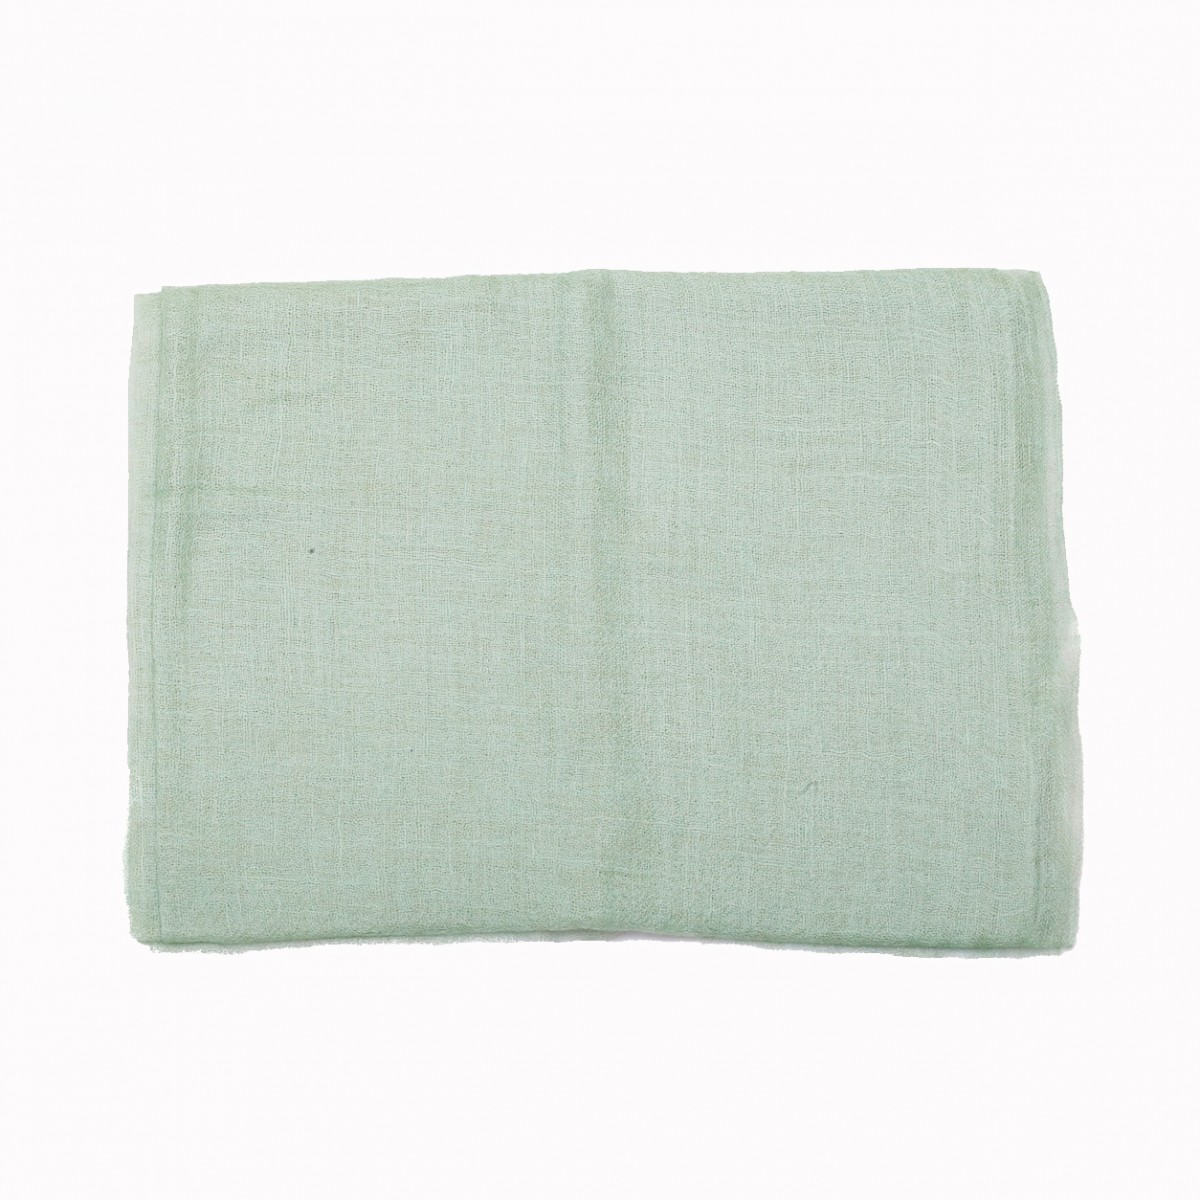 Sheer Pashmina Scarf - Mint Green